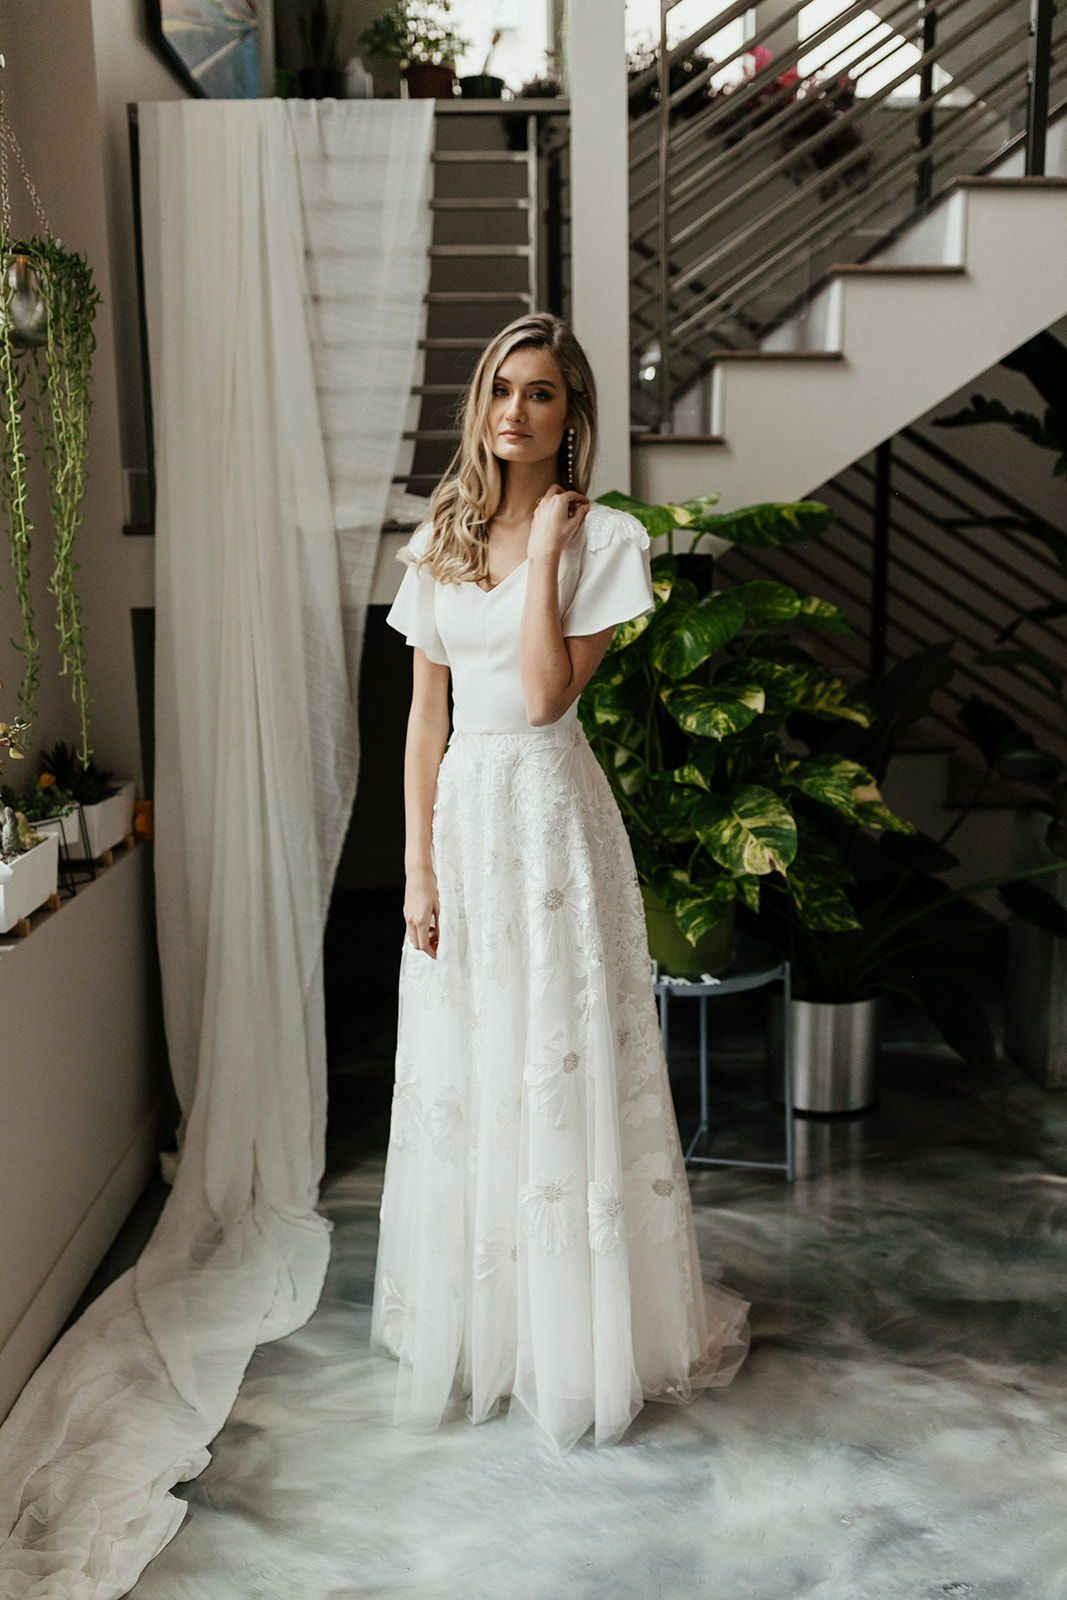 Modest Wedding Dress With Floral Detail In 2020 Modest Wedding Dresses V Neck Wedding Dress Wedding Dresses Romantic